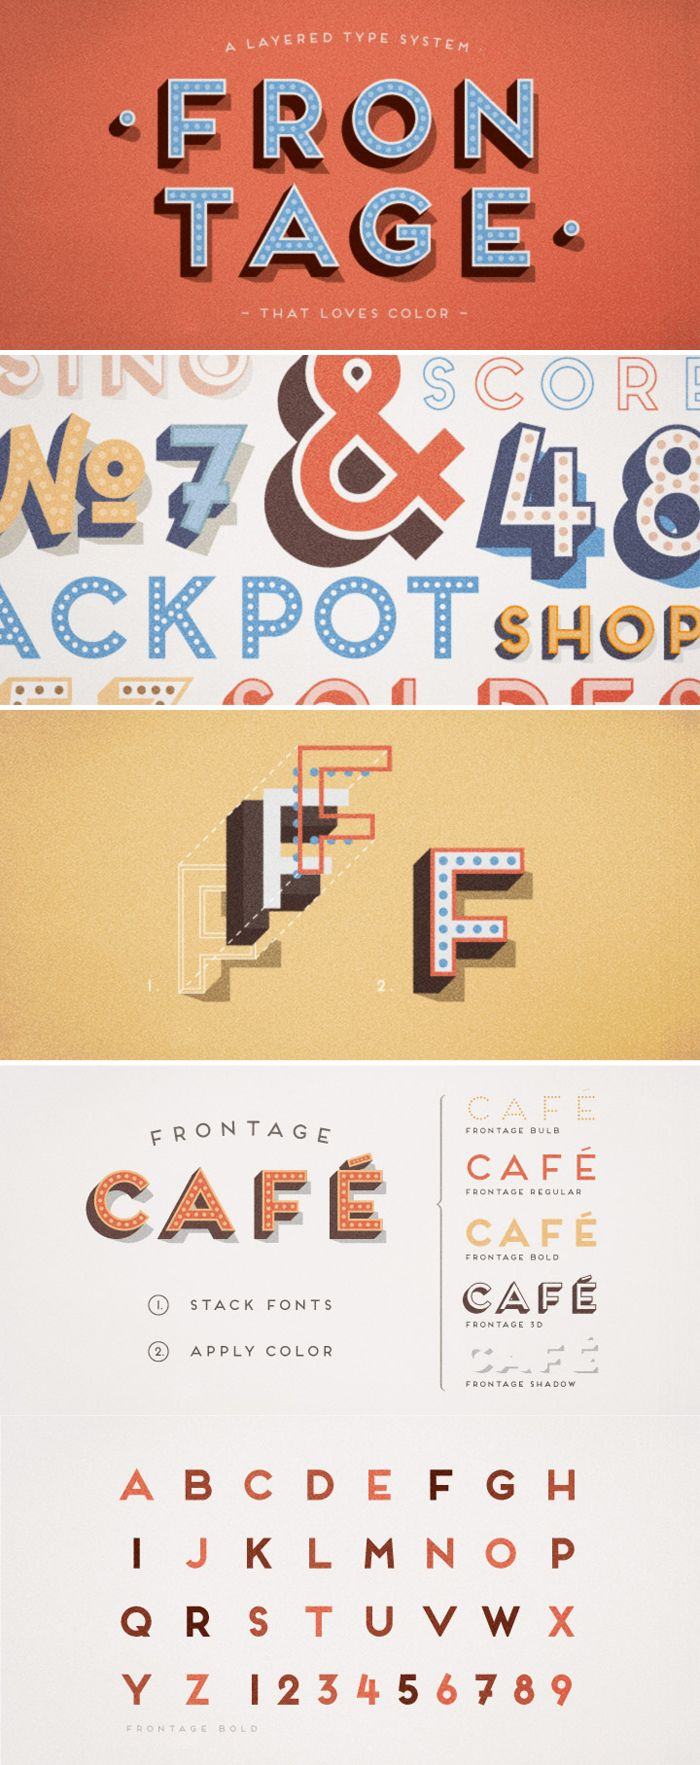 Frontage Font - a charming layered type system